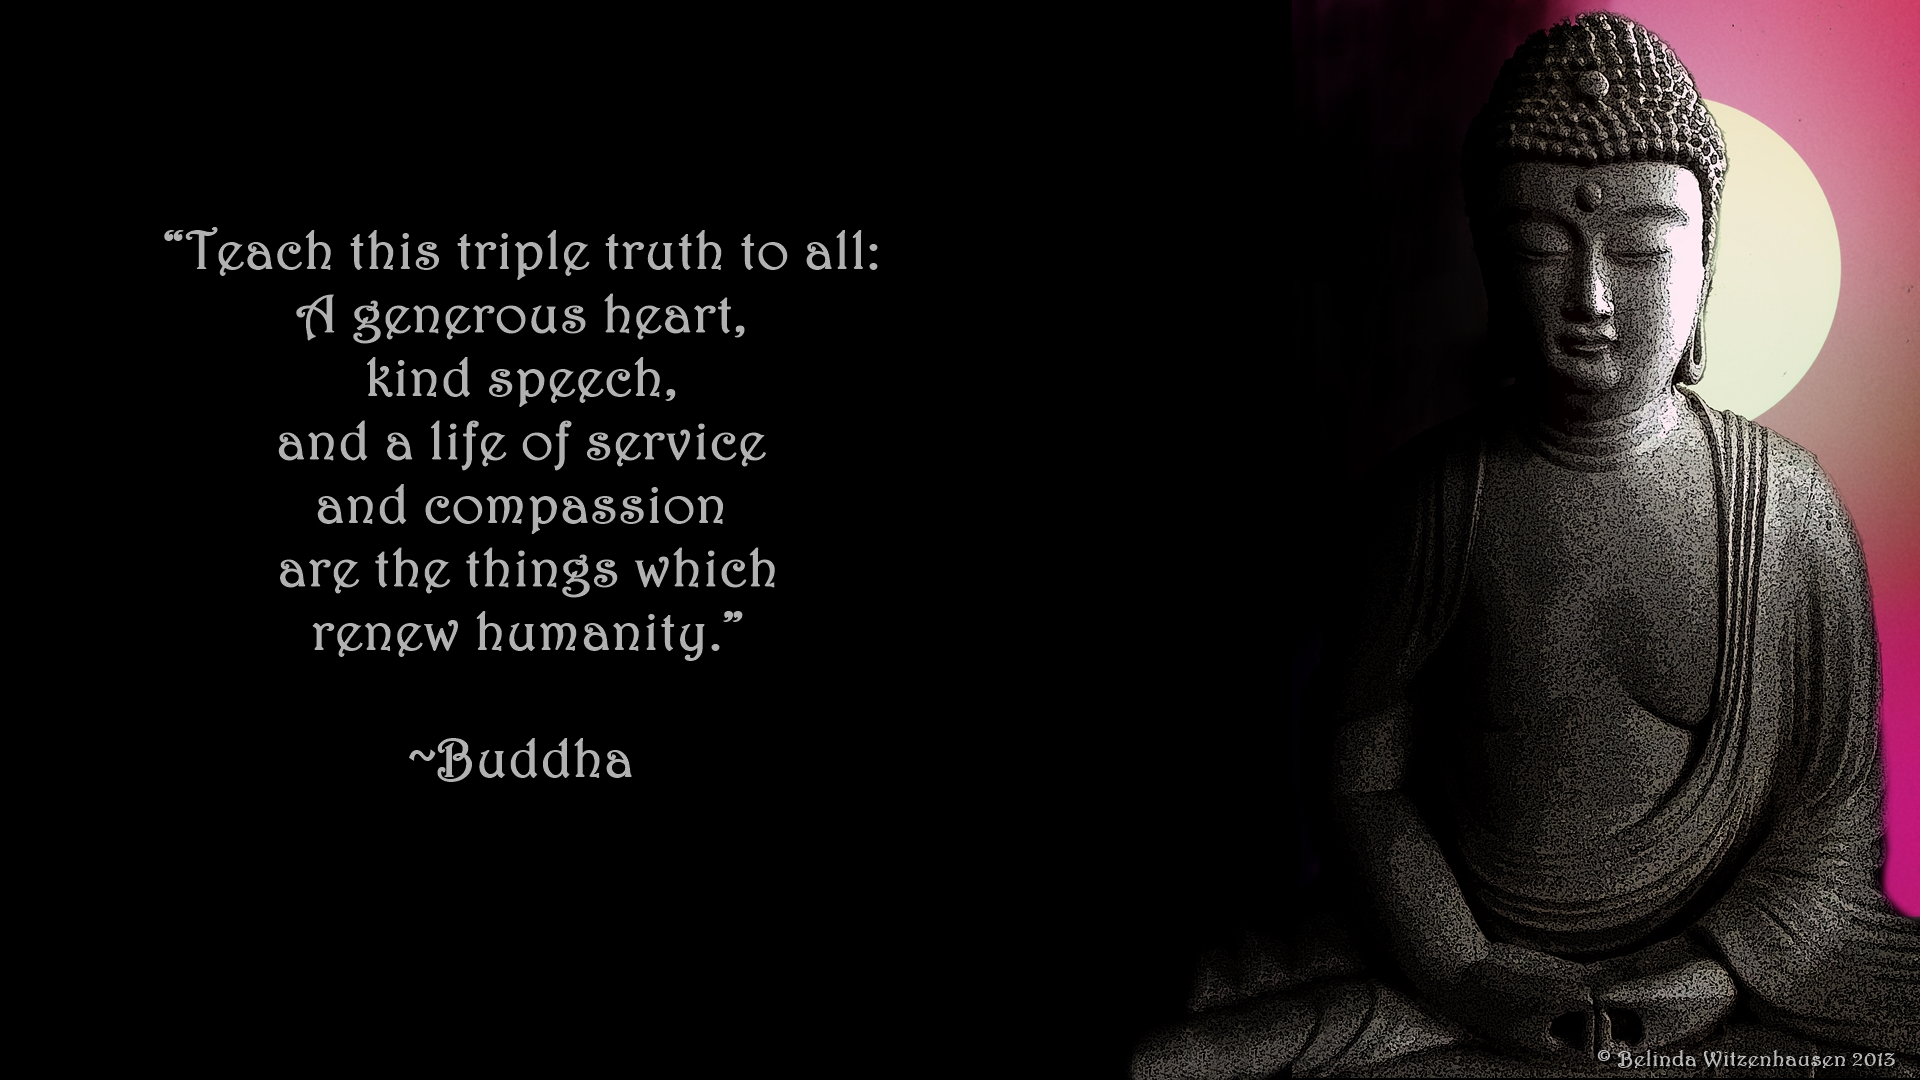 1920x1080 Buddha Quotes Wallpapers QuotesGram